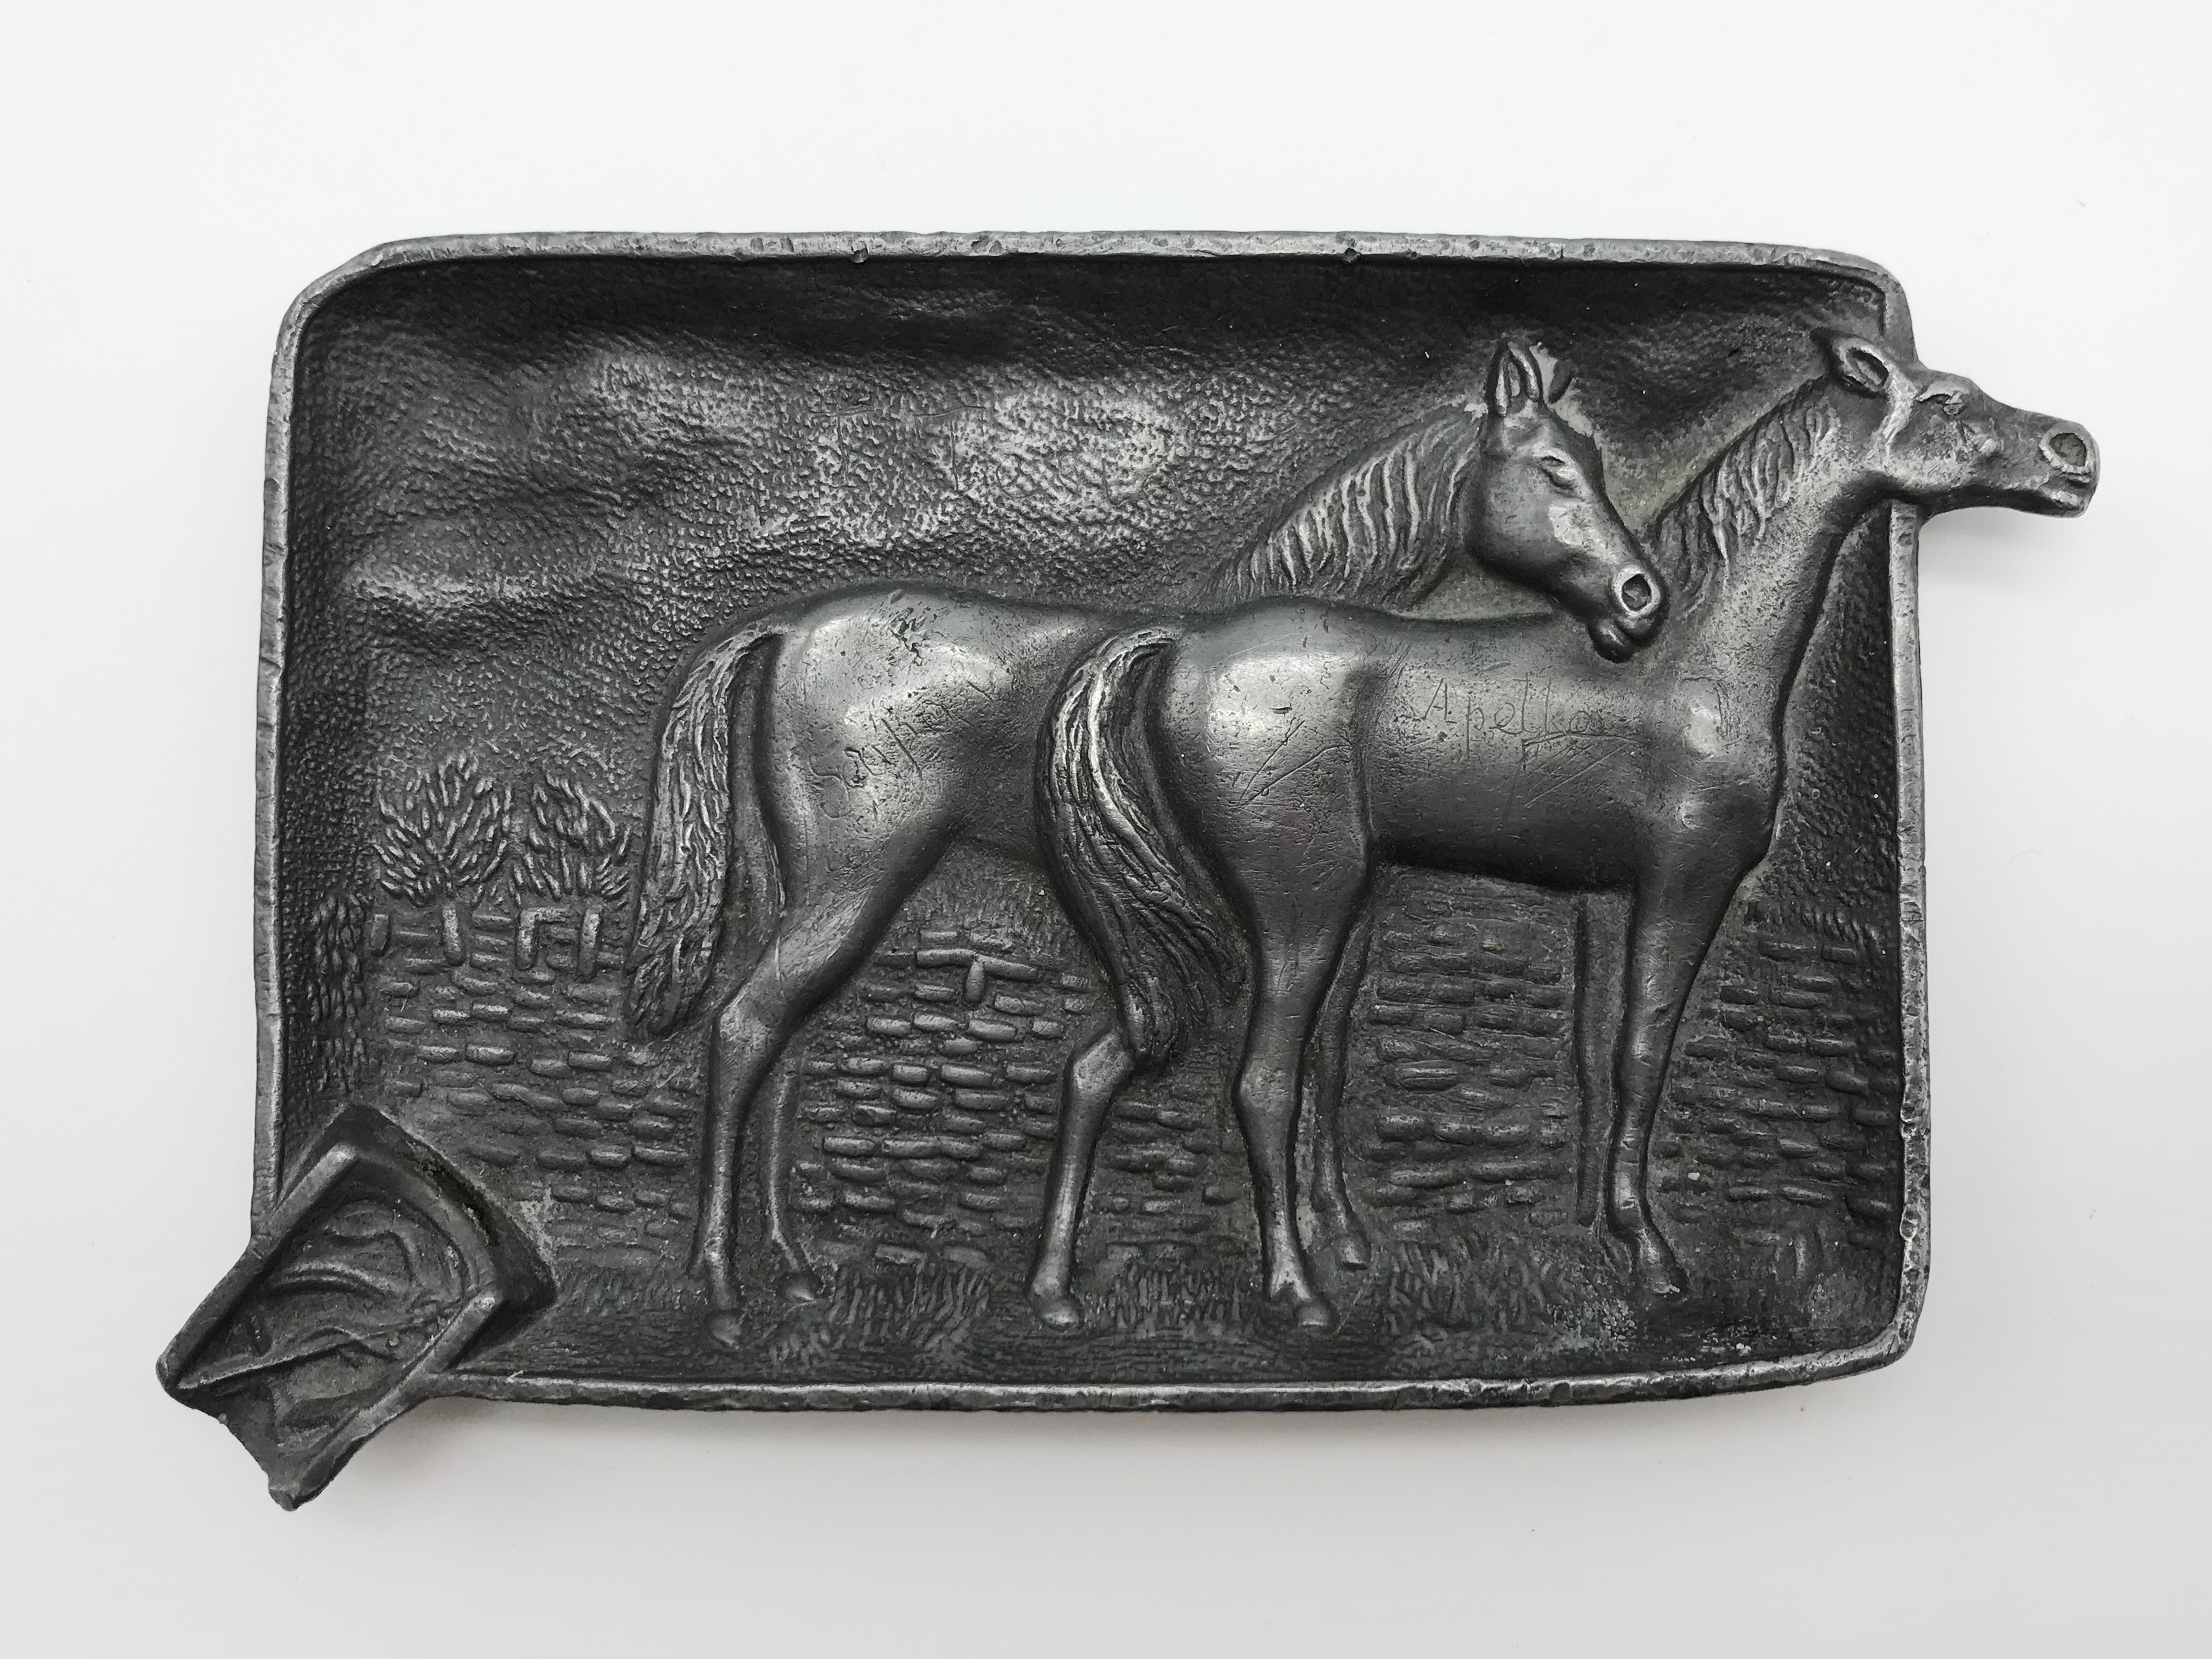 Lot 51 - SMALL PEWTER ASHTRAY WITH HORSES